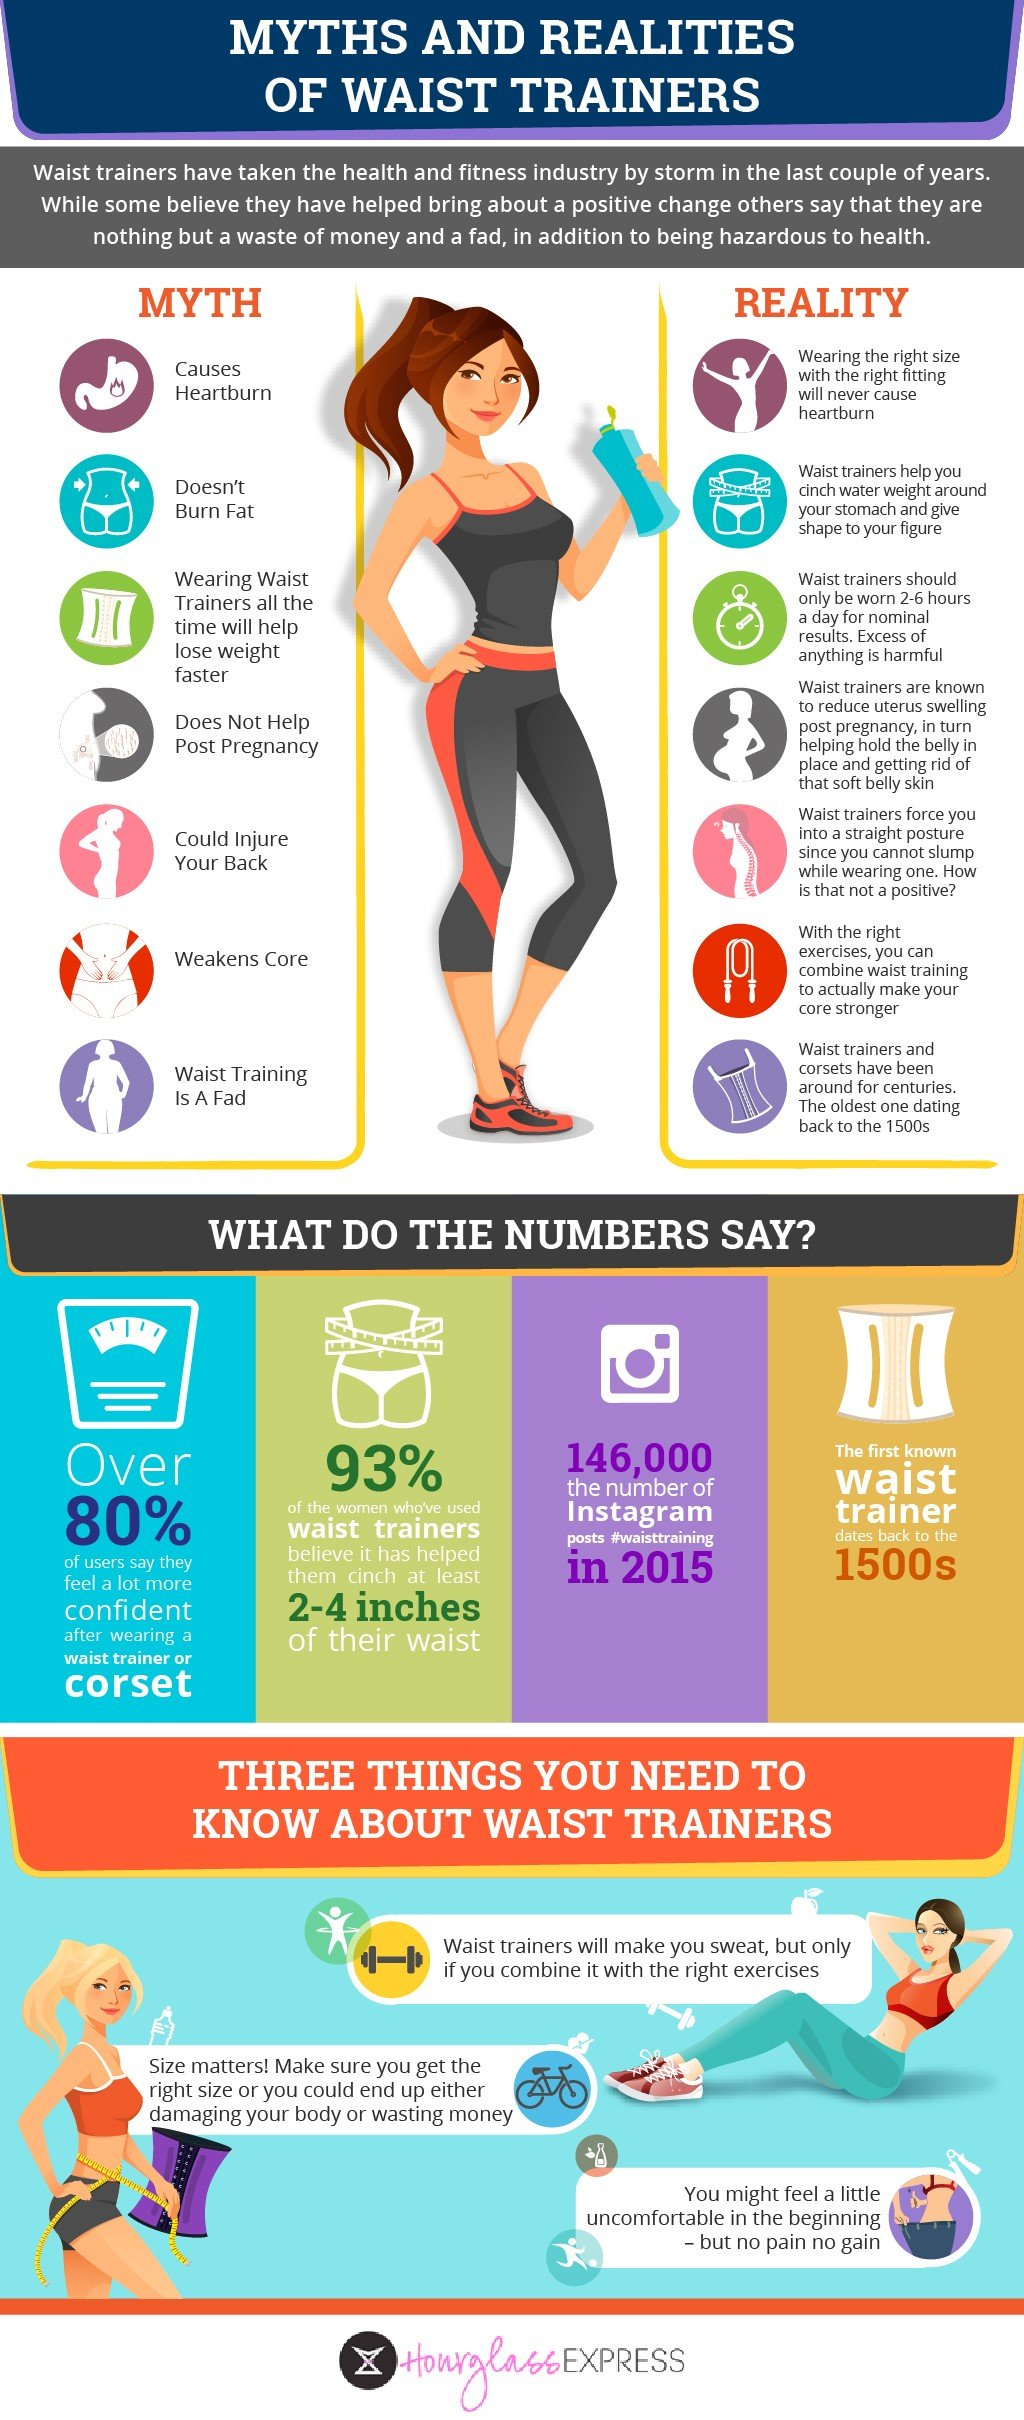 Myths and Realities of Waist Training